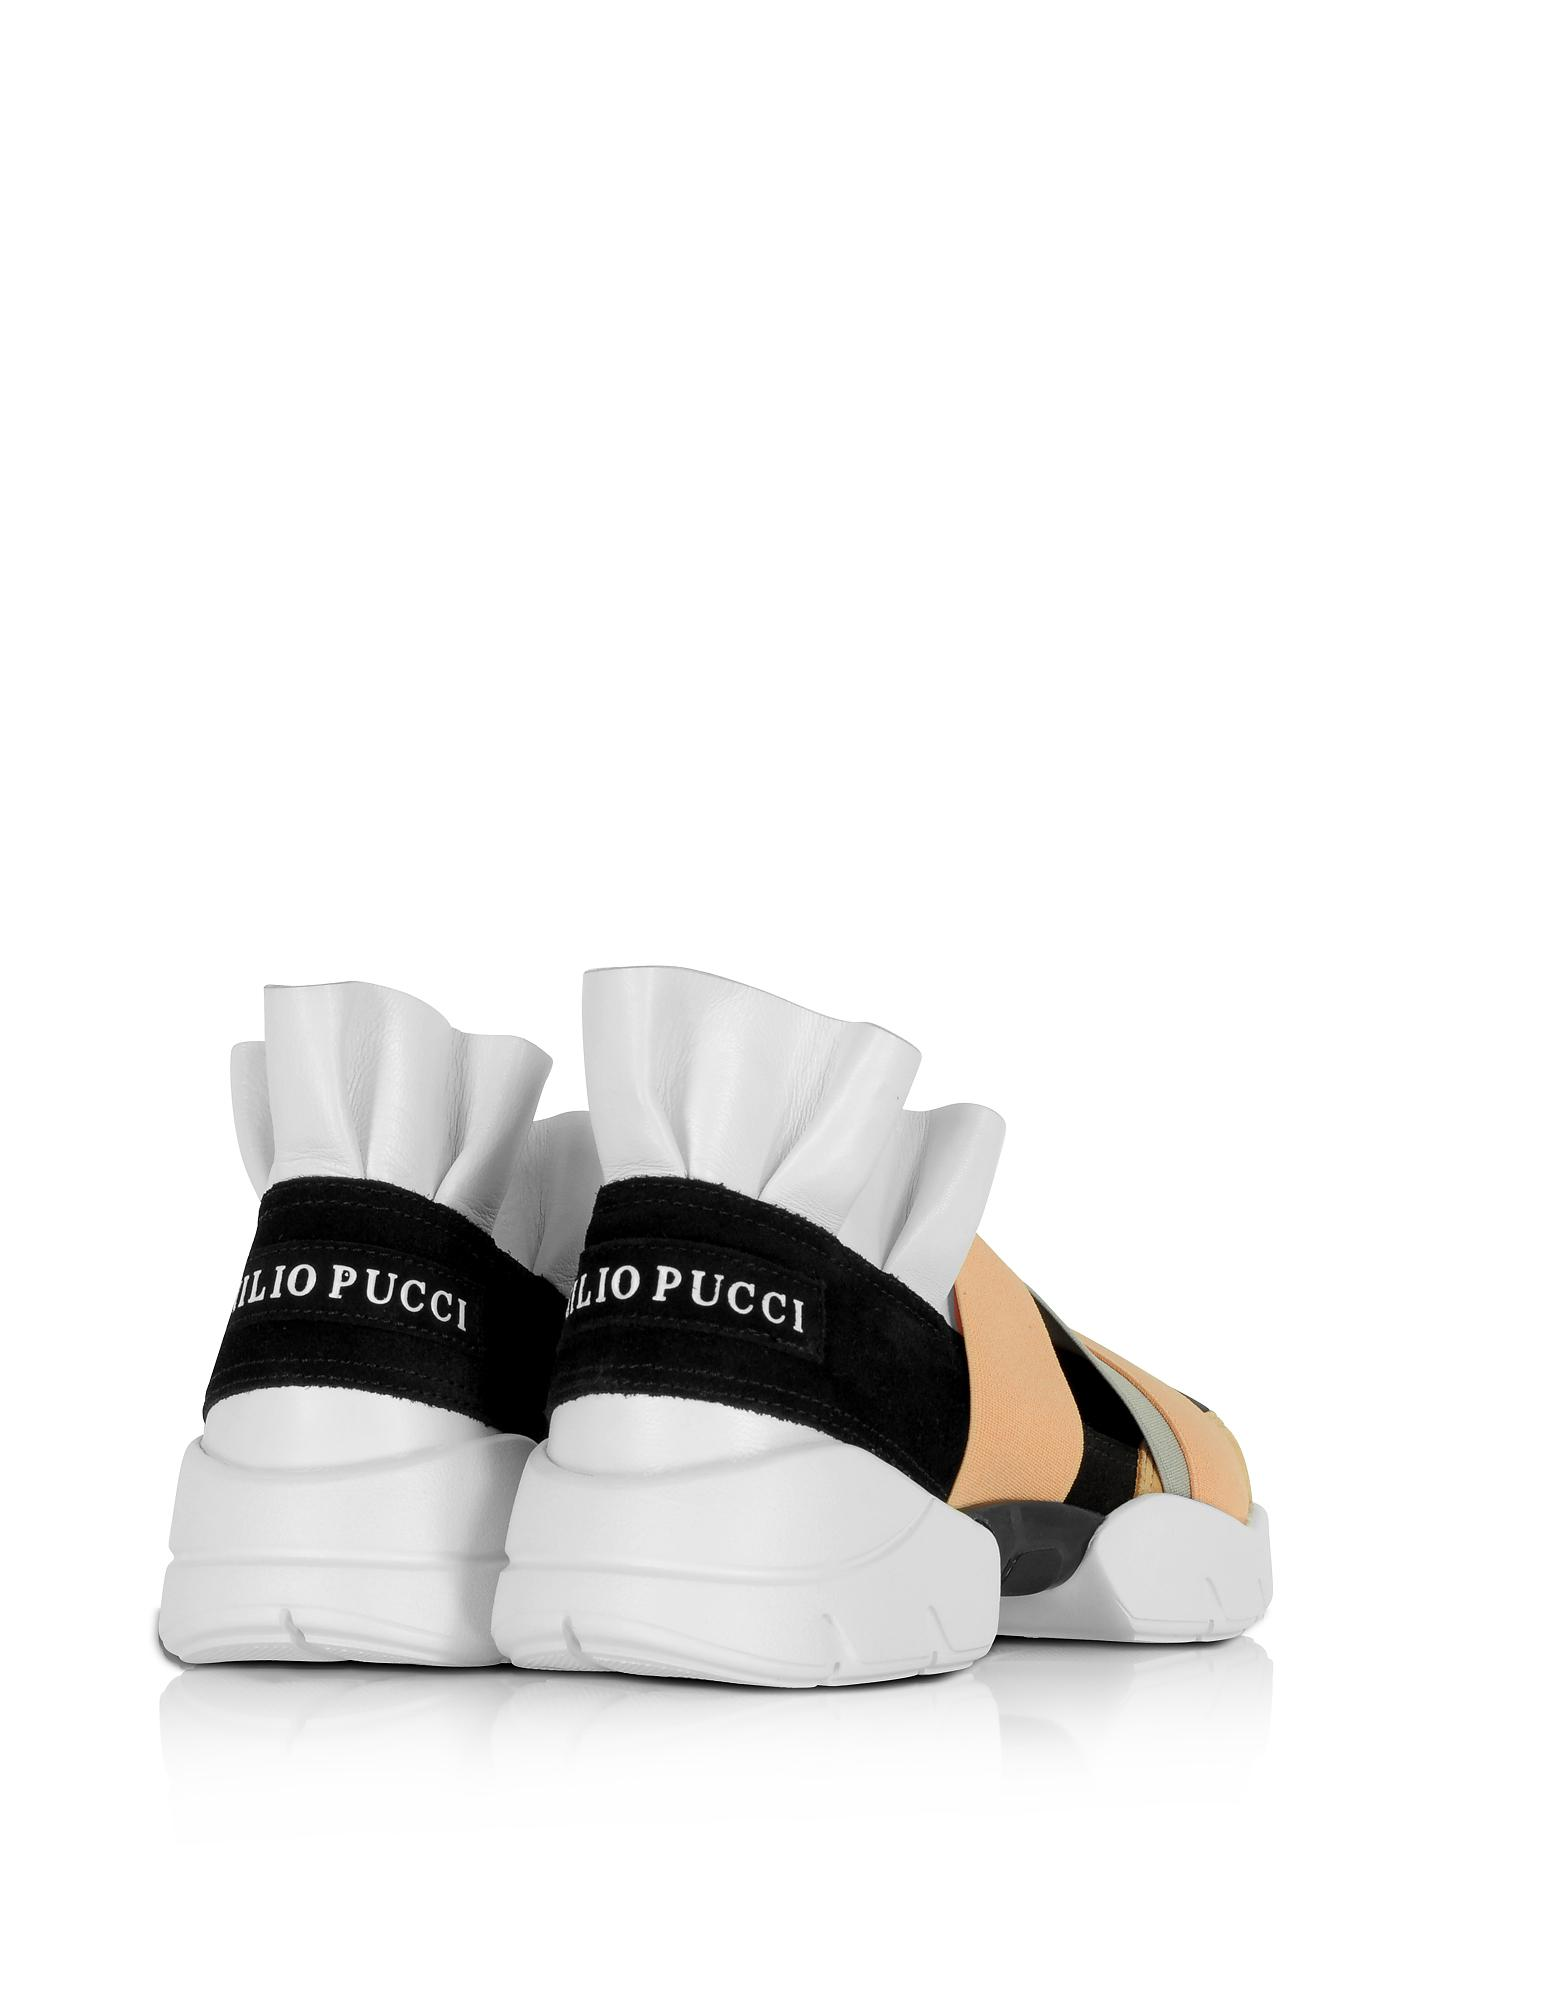 sale store Emilio Pucci Black Leather Platform Sneakers sale 100% guaranteed sale best sale clearance online JyMwg4b